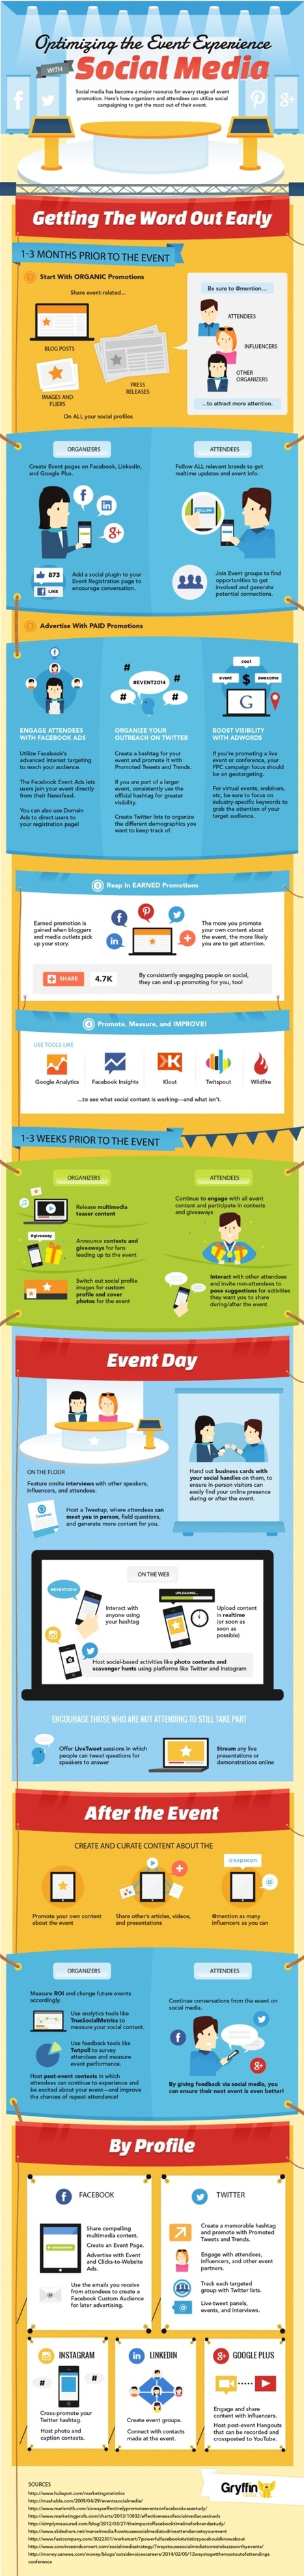 How to use Social Media to Optimize Your Event #INFOGRAPHIC | Marketing & Advertising | Scoop.it